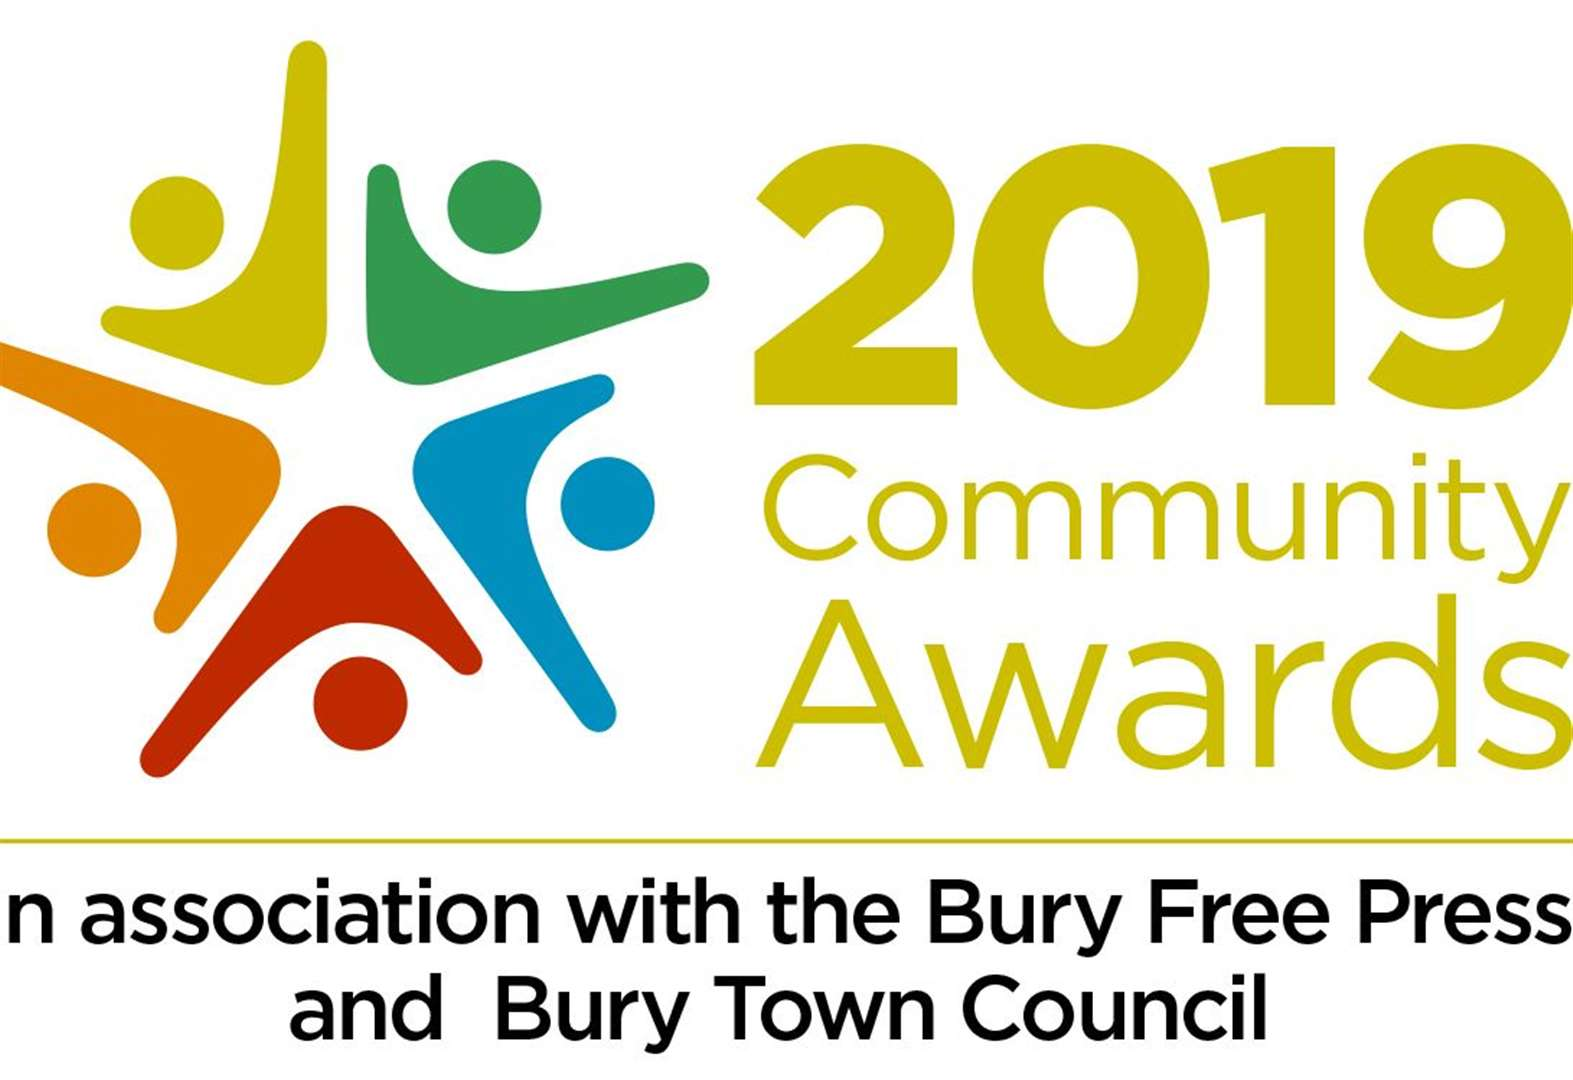 Community Awards: Have you cast your vote?